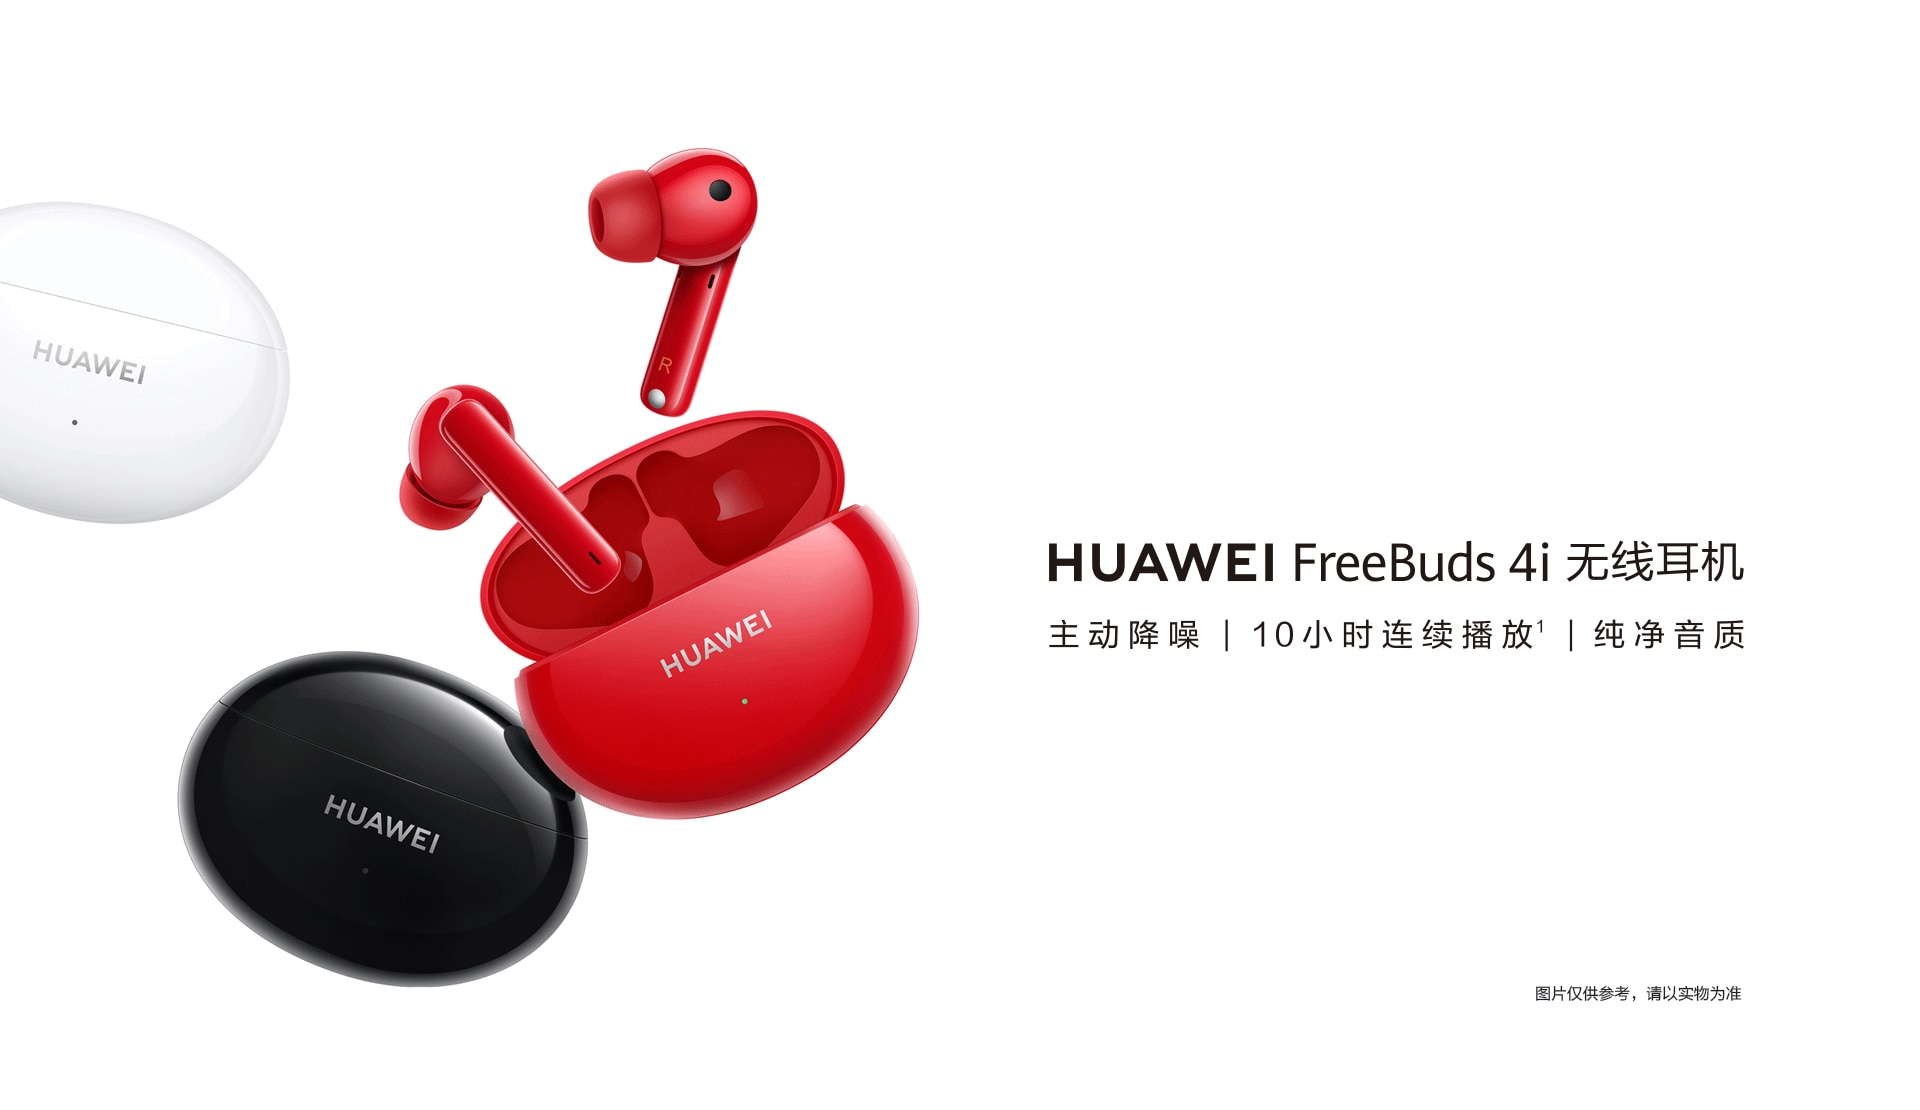 HUAWEI Freebuds 4i wireless earphones 10 hours of playback, fast charge, active noise reduction bluetooth earphones, clearly